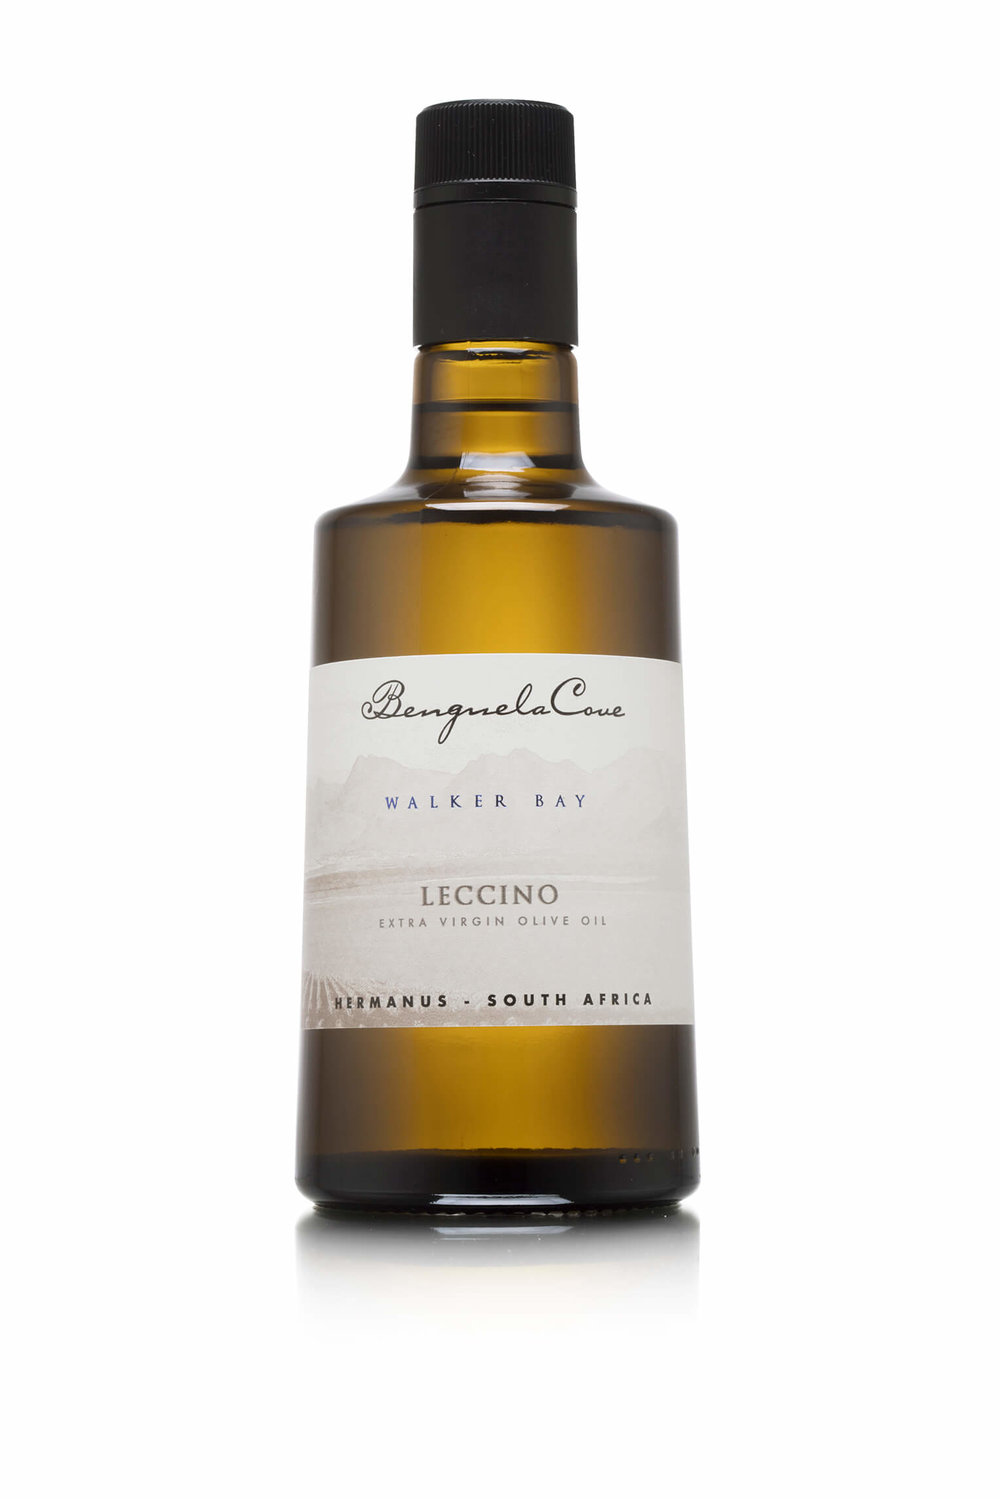 Leccino - Character: Herbaceous notes add fresh lift, gentle fruit and nutty taste.